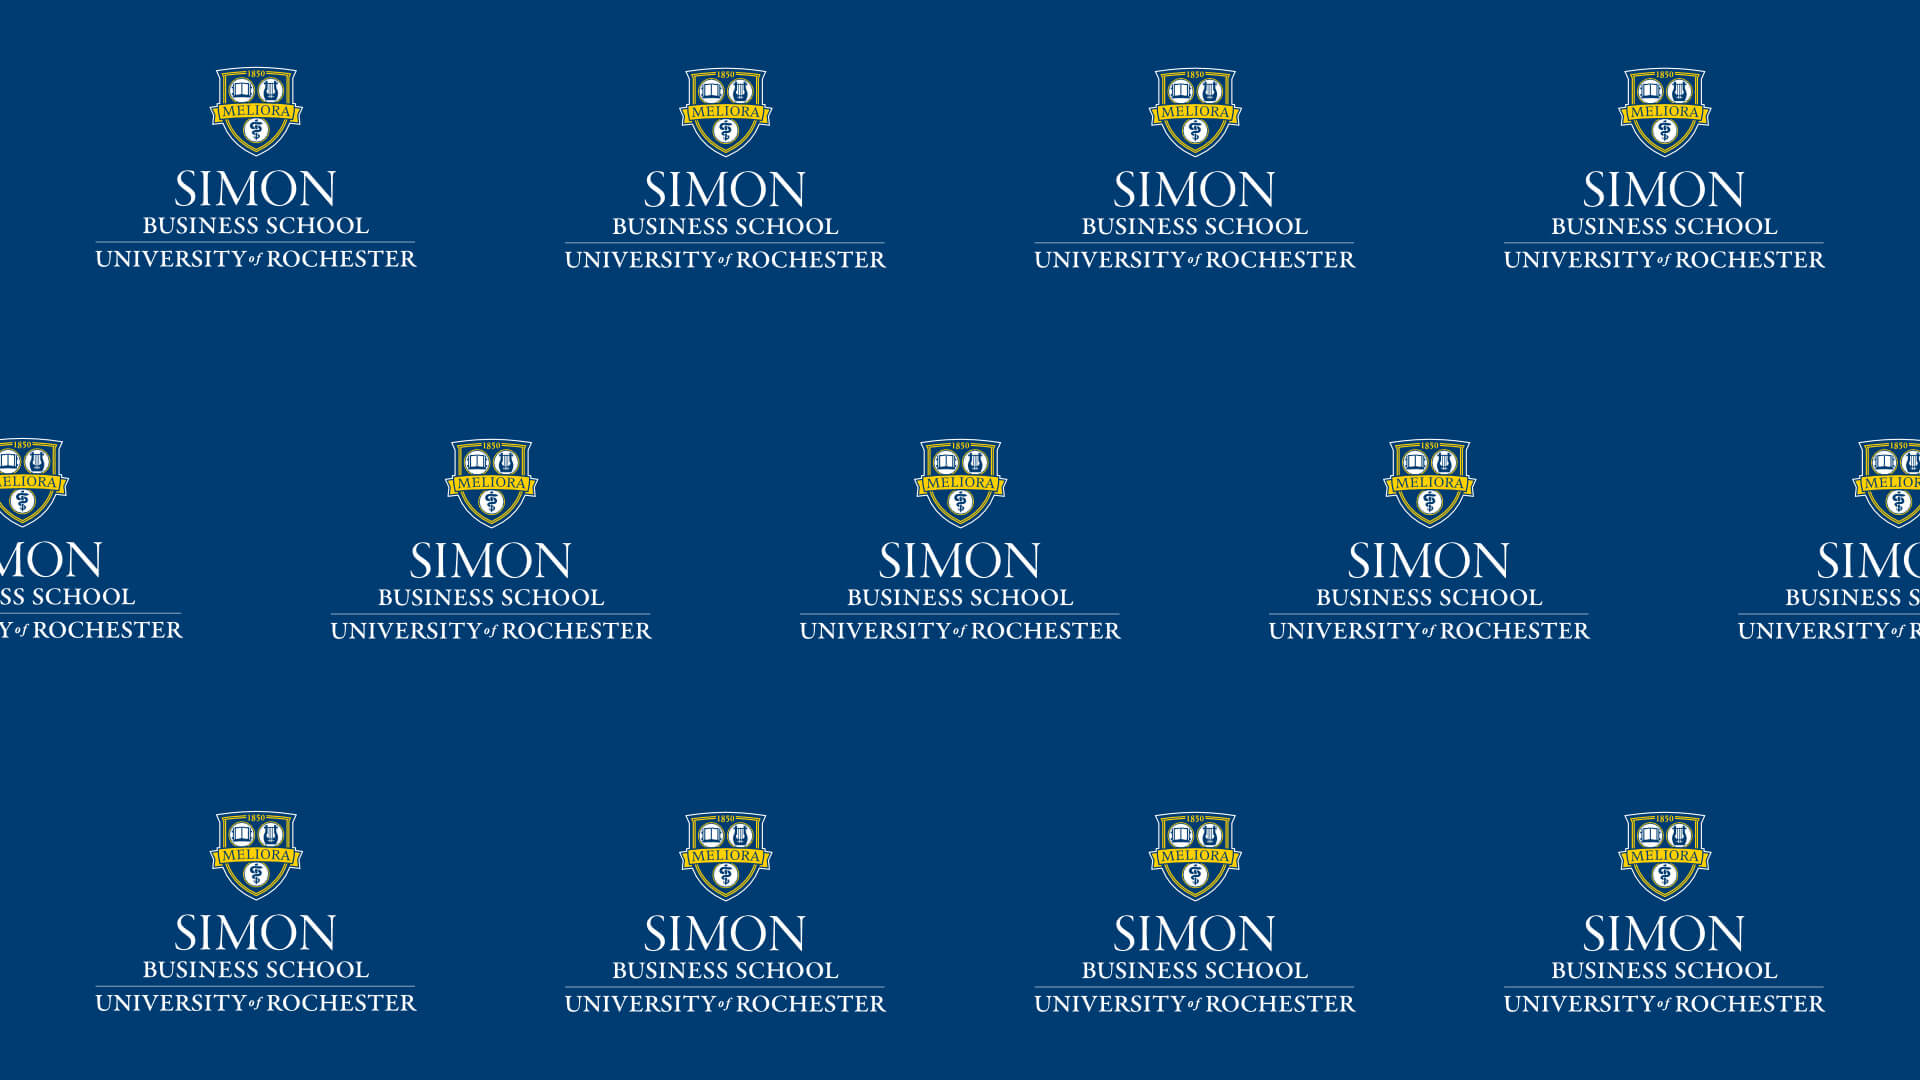 University of Rochester Zoom Background